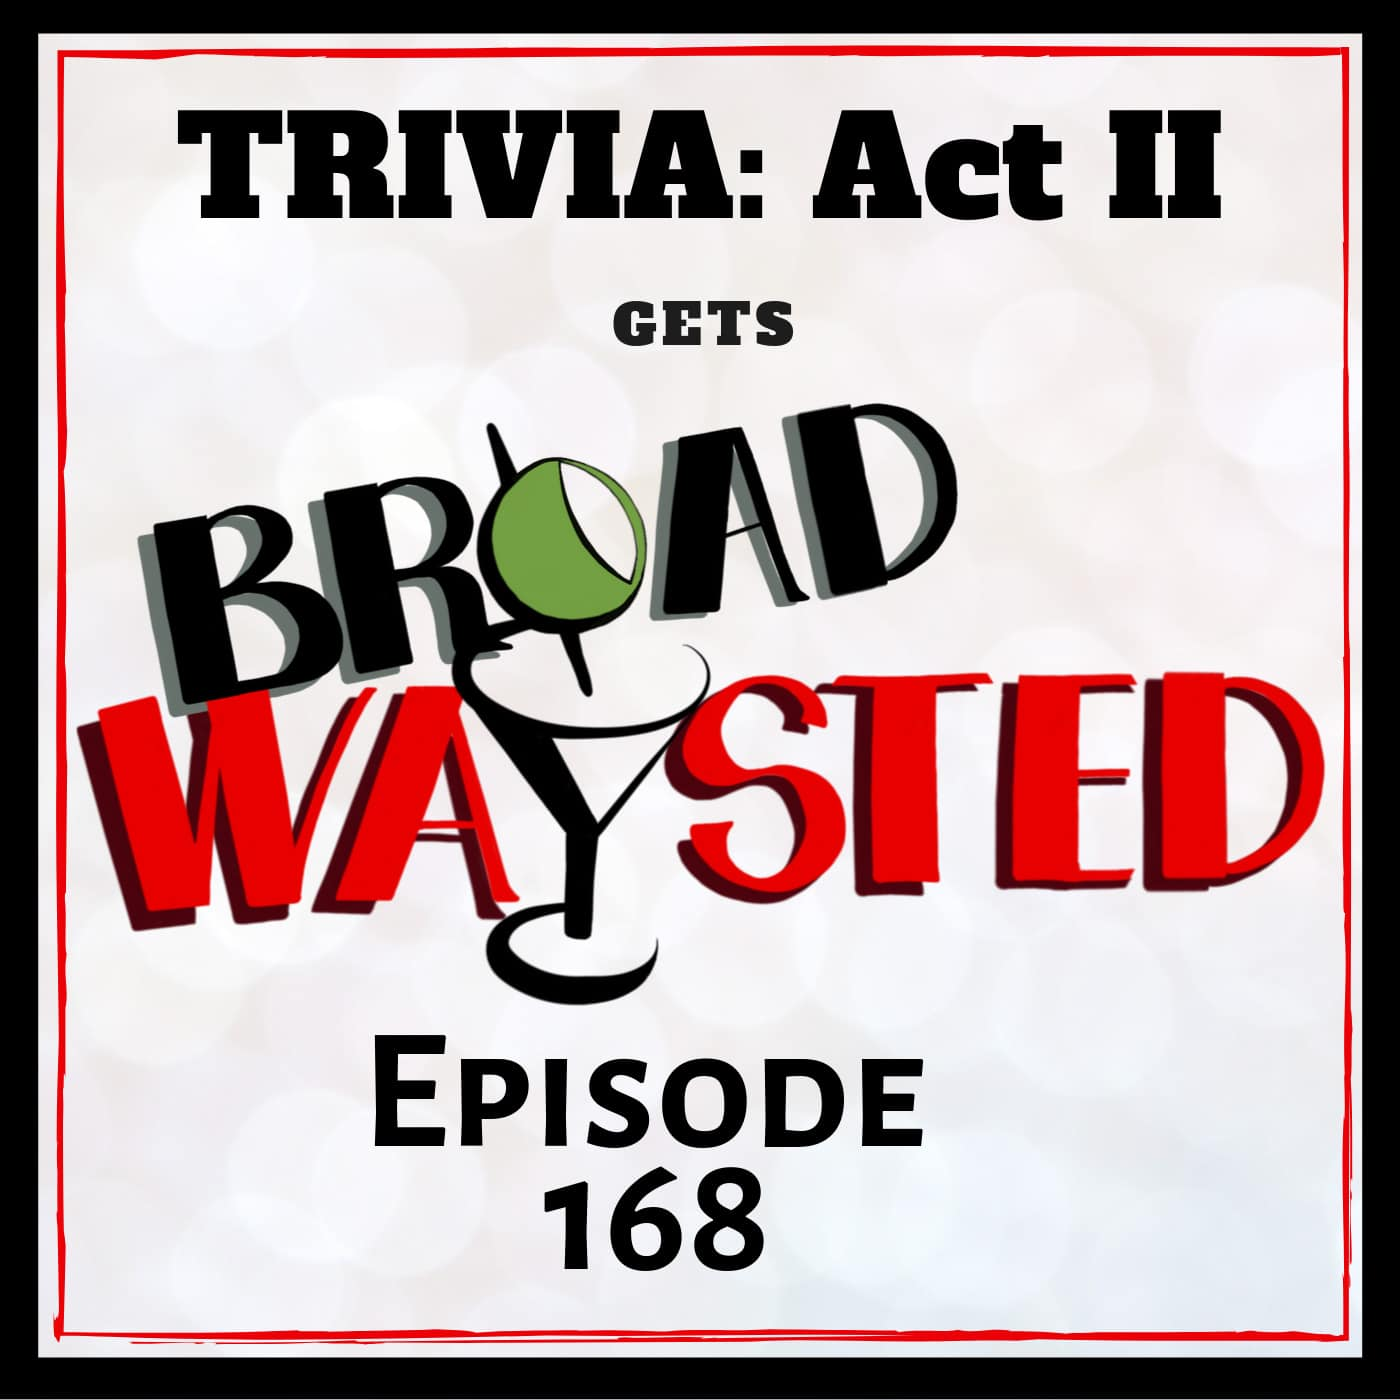 Broadwaysted Ep 168 Trivia: Act II